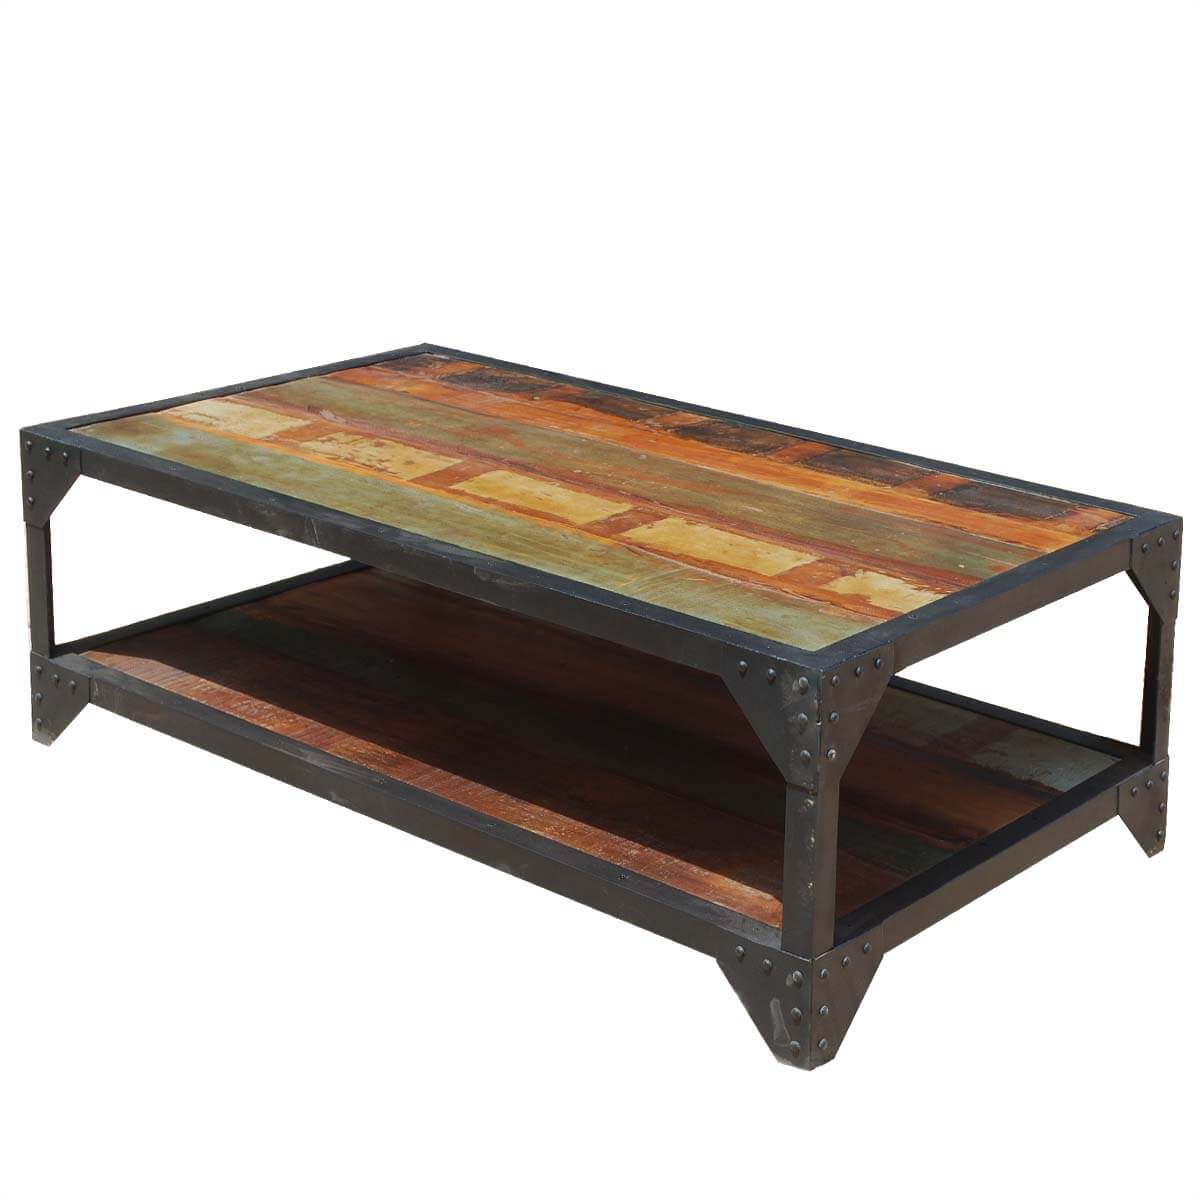 Wonderful image of  Industrial Wrought Iron & Reclaimed Wood 2 Tier Coffee Table with #B27F19 color and 1200x1200 pixels